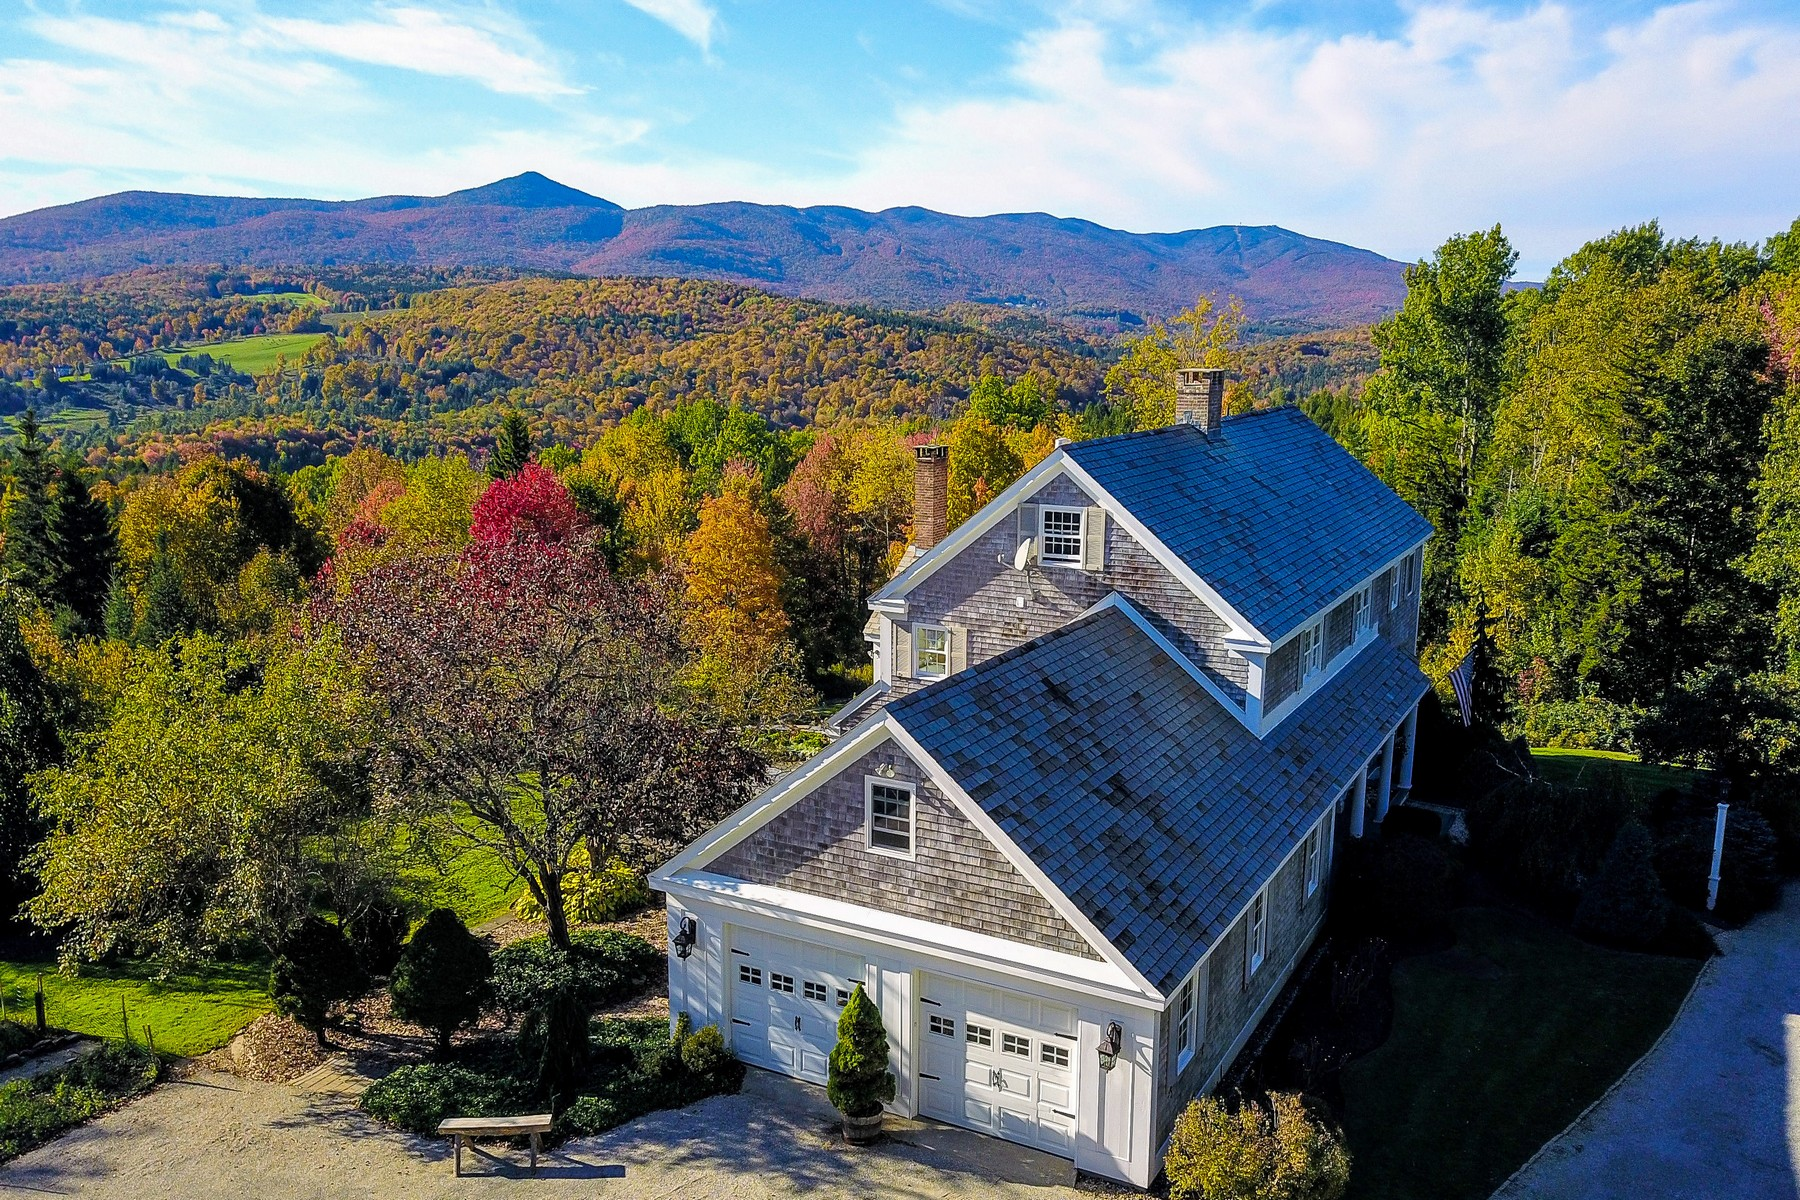 Single Family Home for Sale at Stunning Residence with Breathtaking Views 42 Beau Ridge Rd Wilmington, Vermont 05363 United States